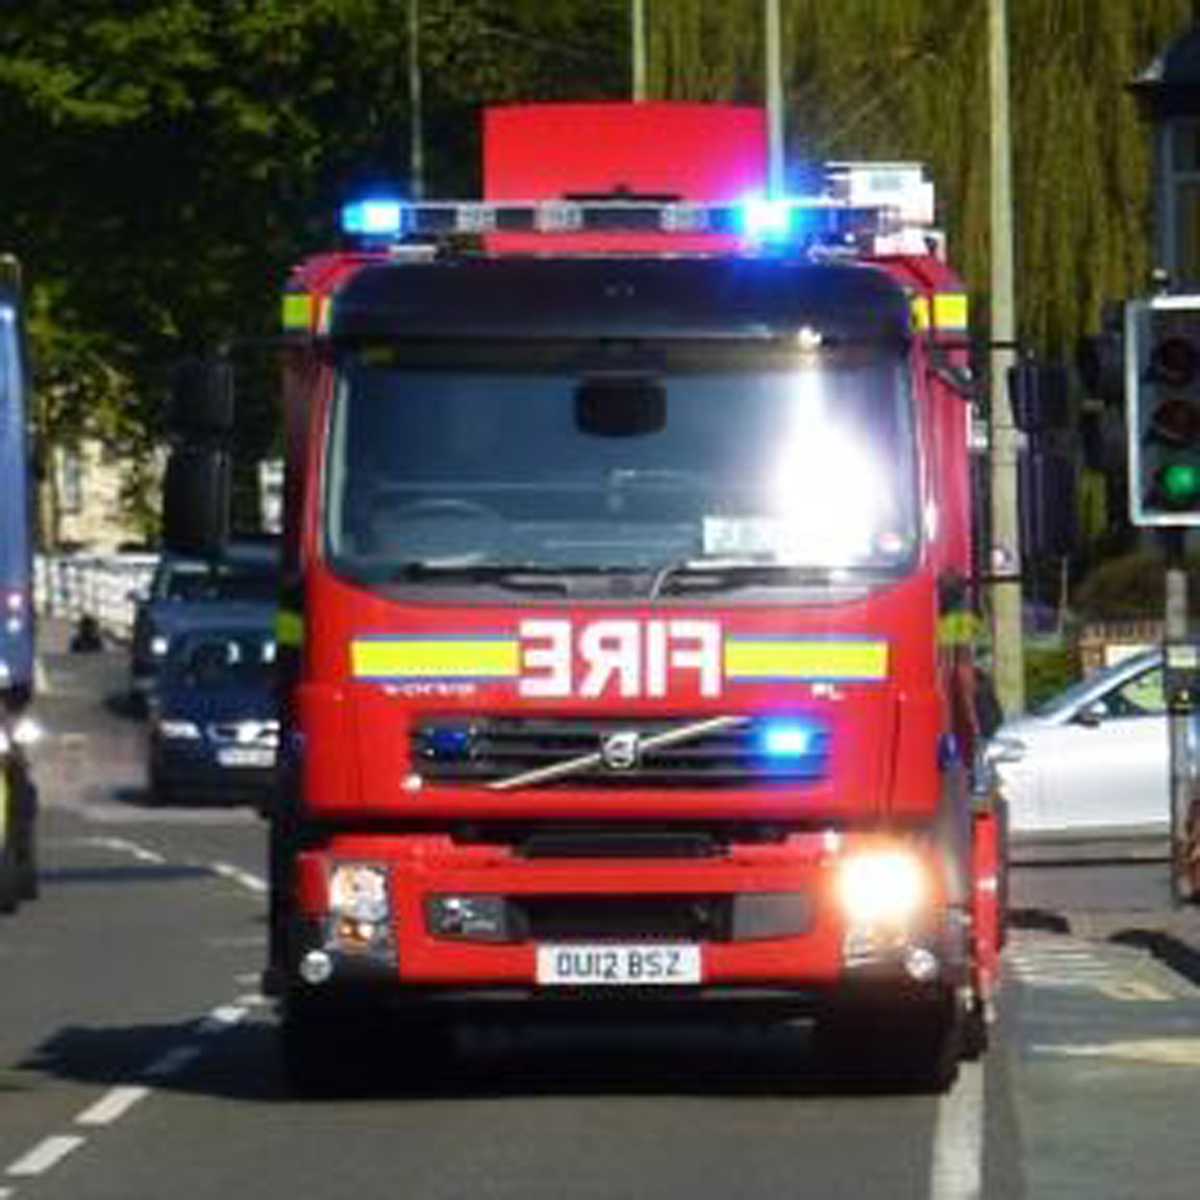 Fire crews called to burning car in Peacehaven